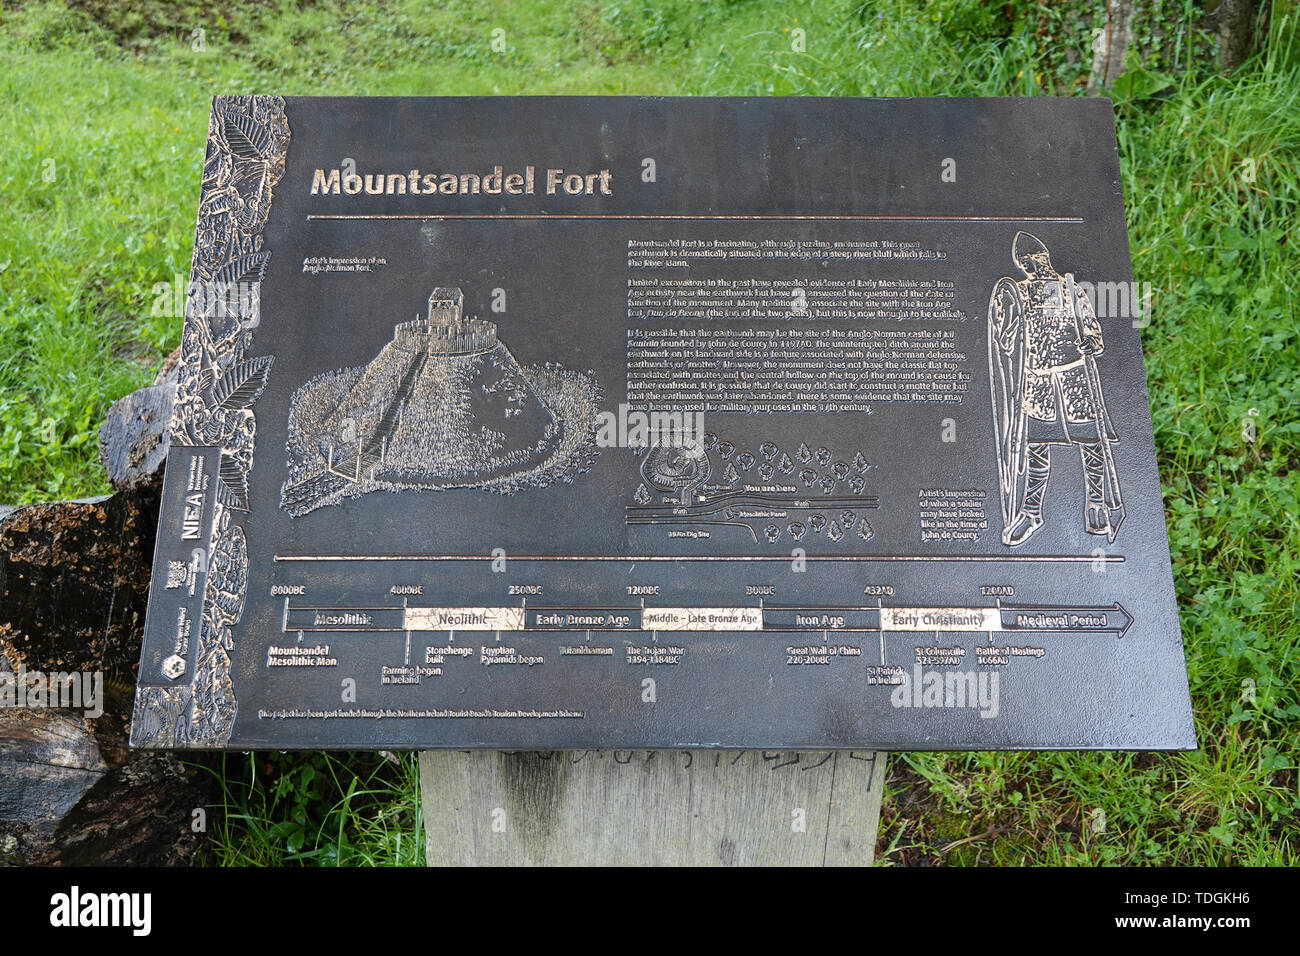 Coleraine, Northern Ireland - June 5, 2019: A metal plaque is shown describing the known history of the ancient Mountsandel Fort site. - Stock Image